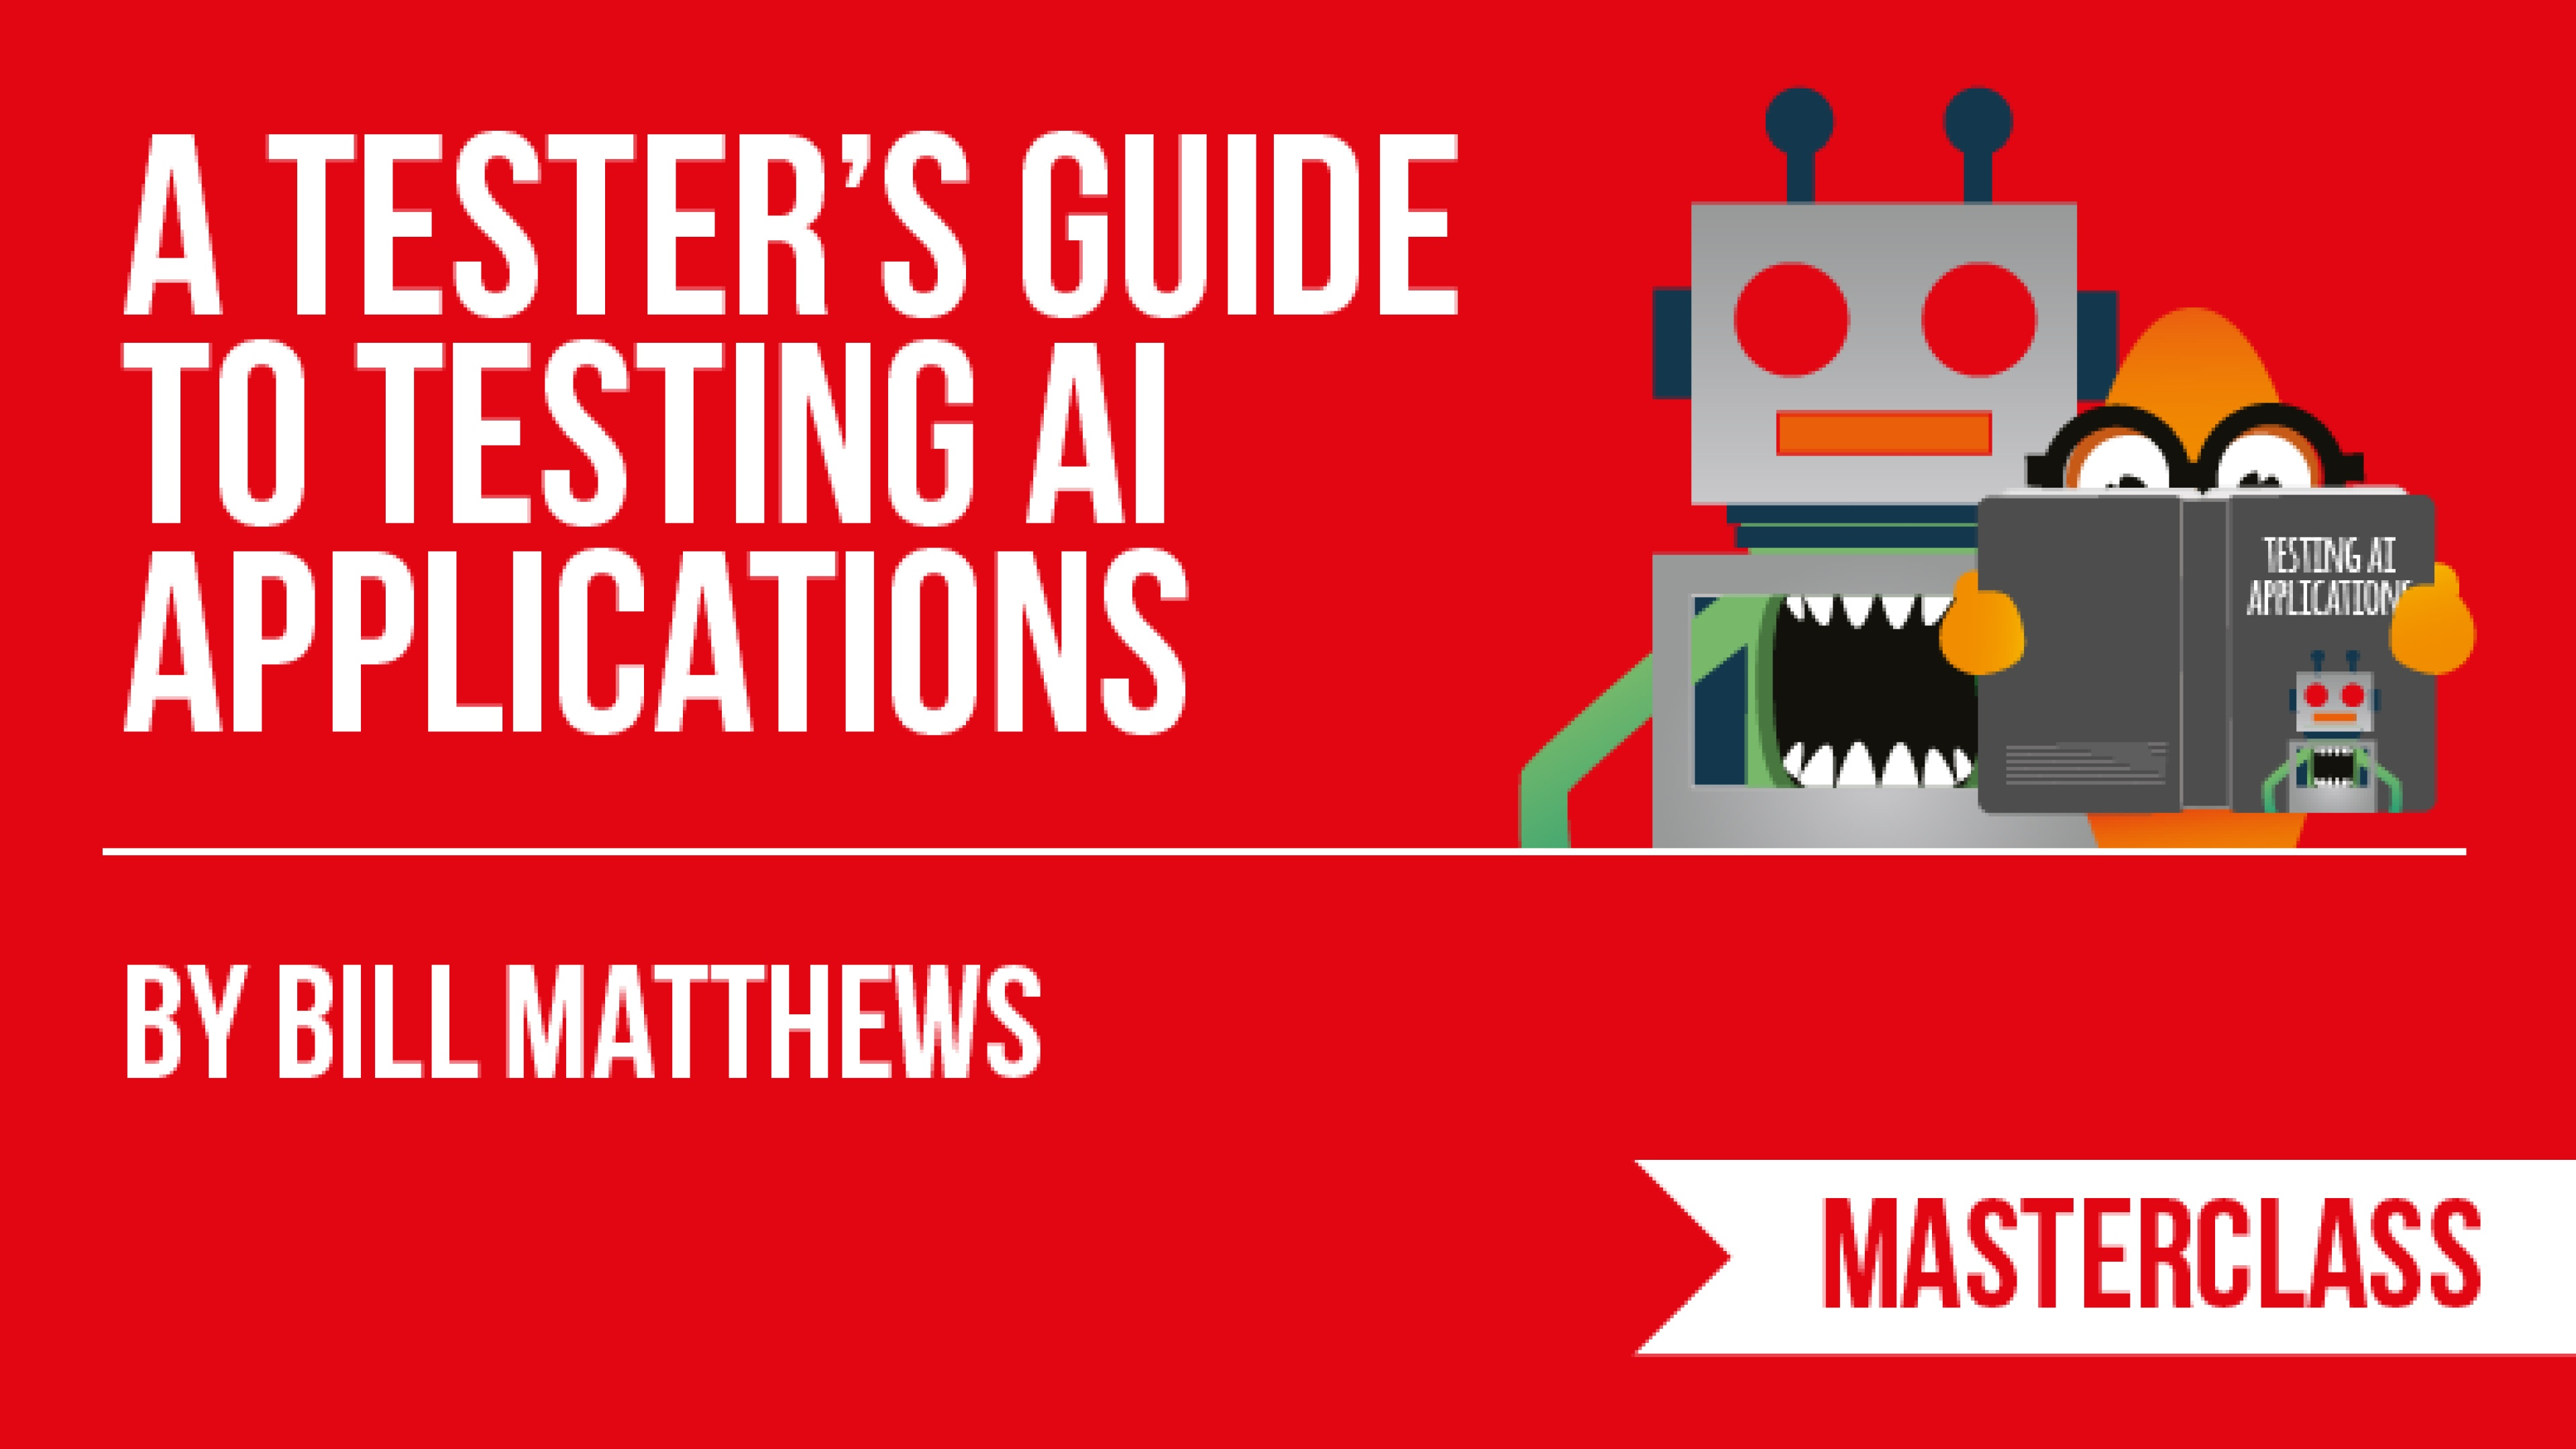 A Tester's Guide to Testing AI Applications with Bill Matthews